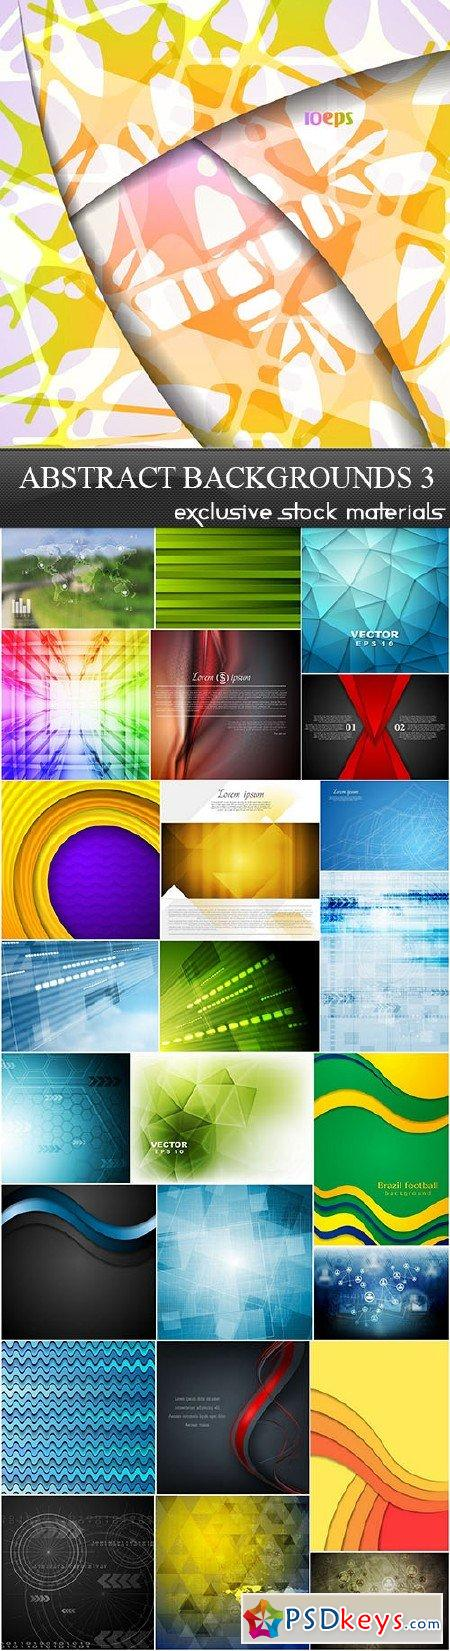 Abstract Backgrounds Vector Set 3 25xEPS